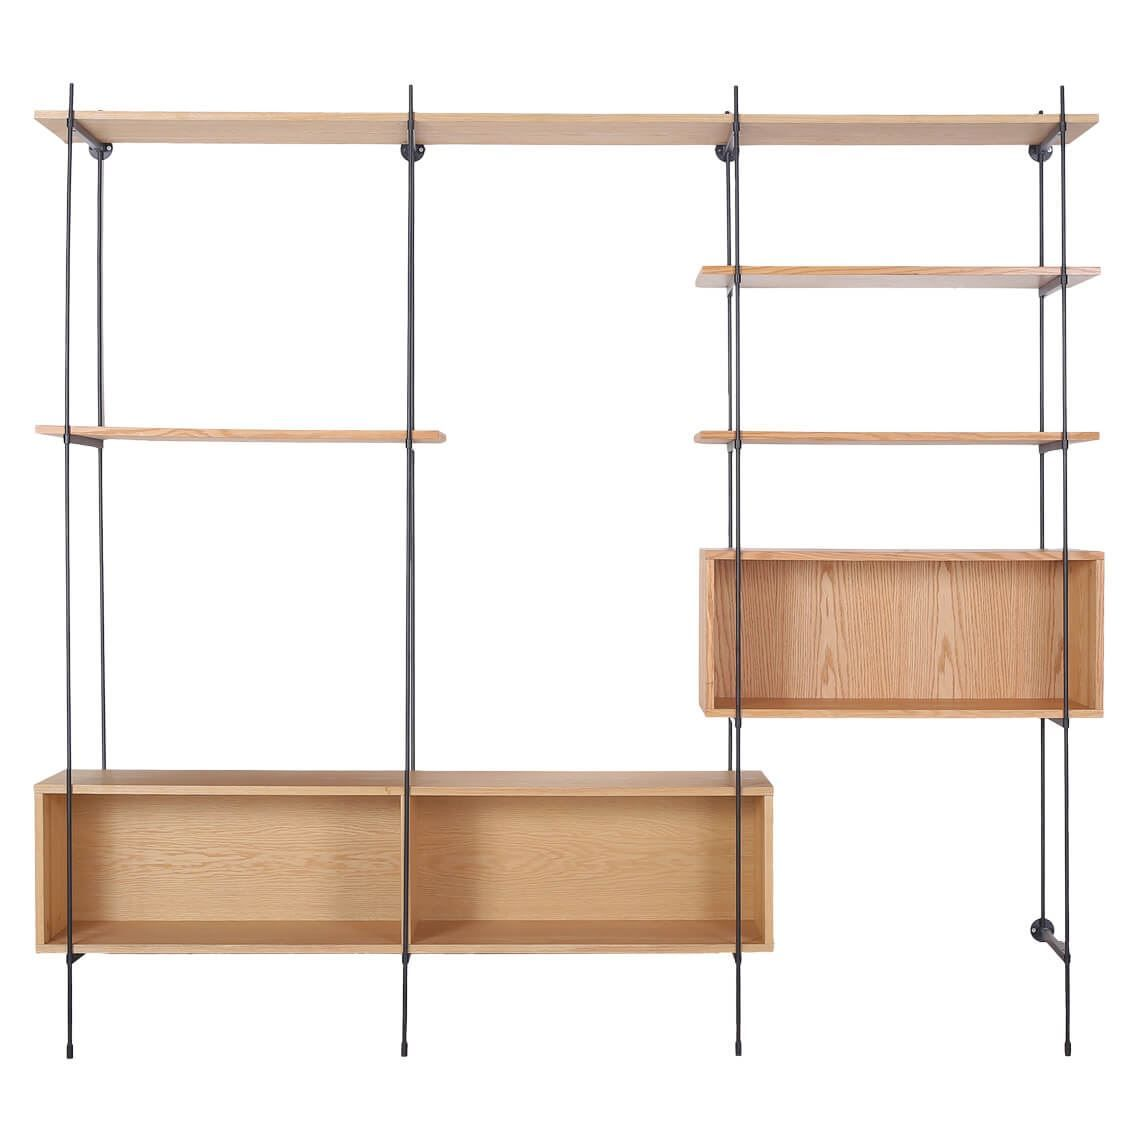 Flex Modular Kit 1 In 2020 Modular Bookshelves Oak Wall Shelves Shelving Systems